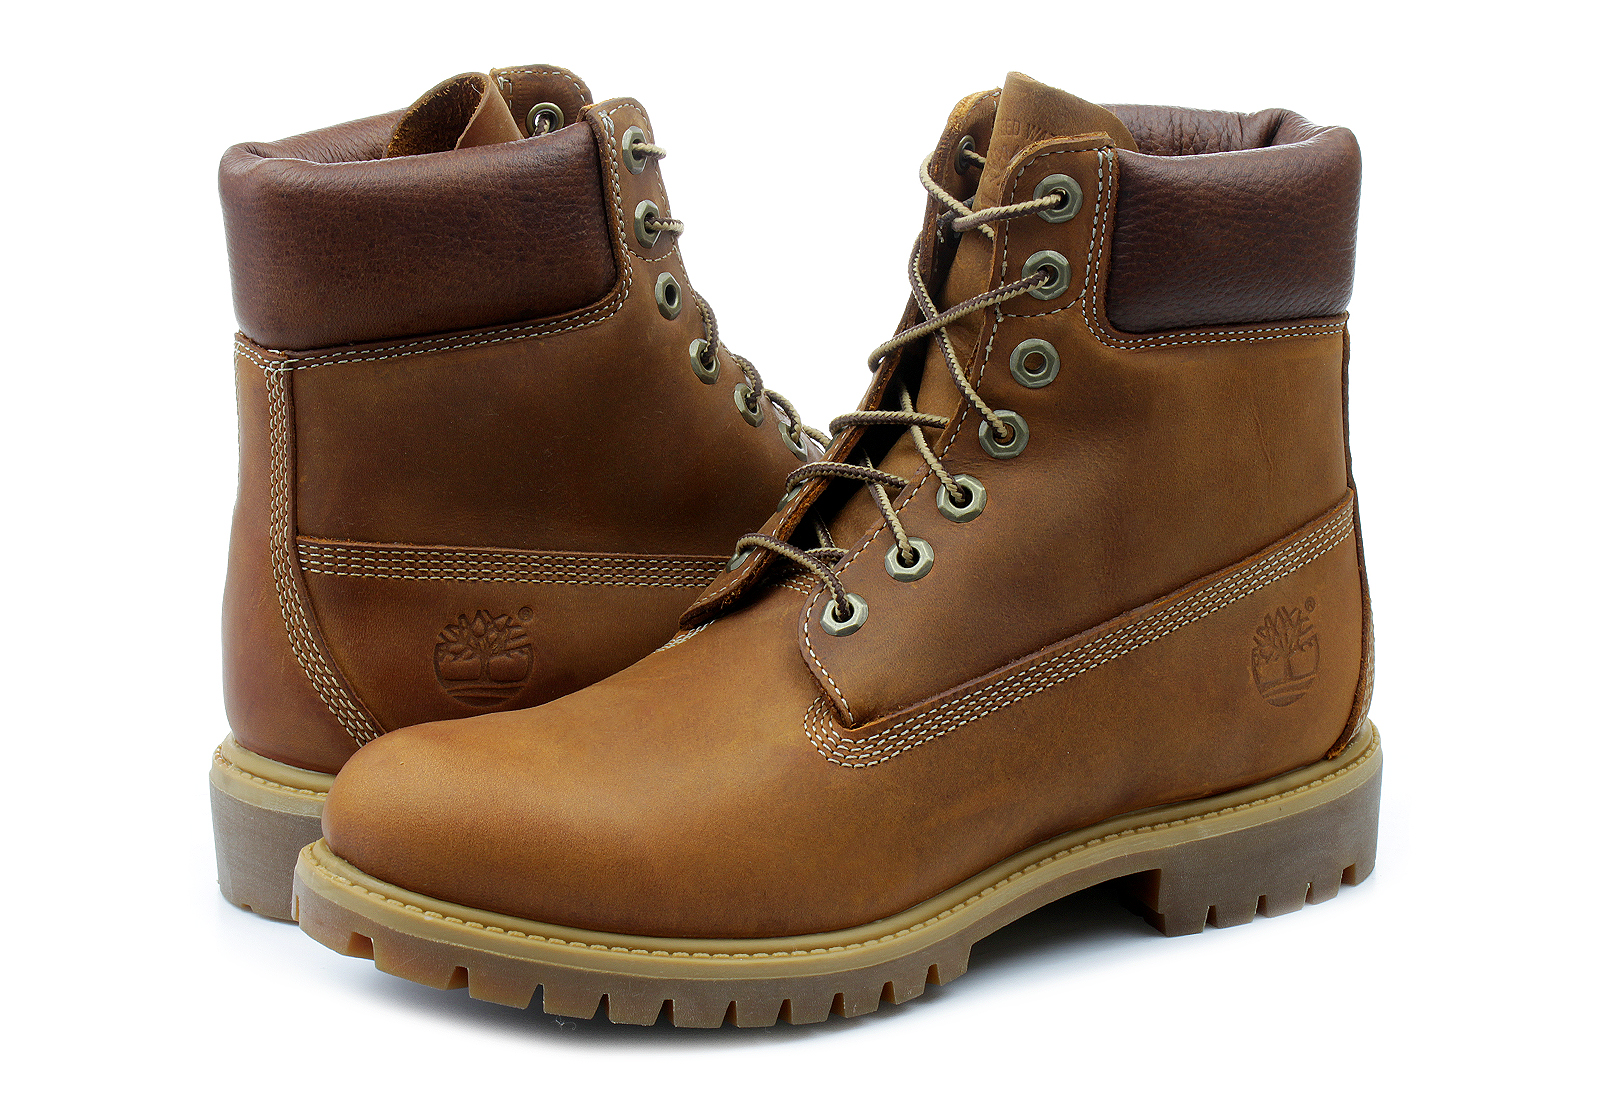 timberland boots 6in prem boot 27094 brn shop